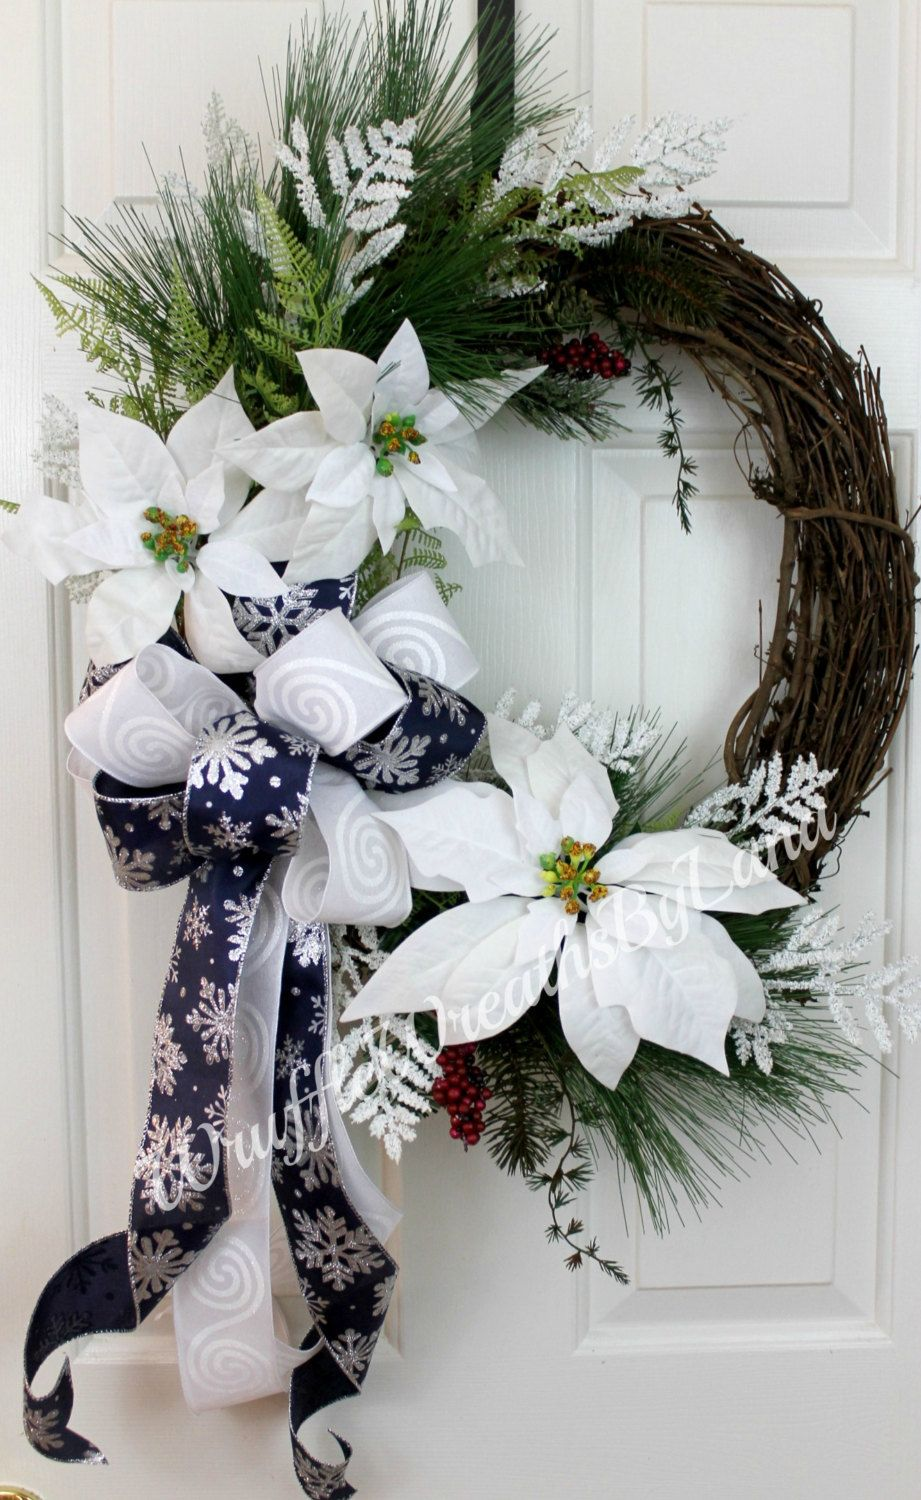 Winter White Grapevine Wreath Winter White Christmas Wreath Winter Wreath Poinsettia Wreath Poinsetti White Christmas Wreath Christmas Wreaths Xmas Wreaths